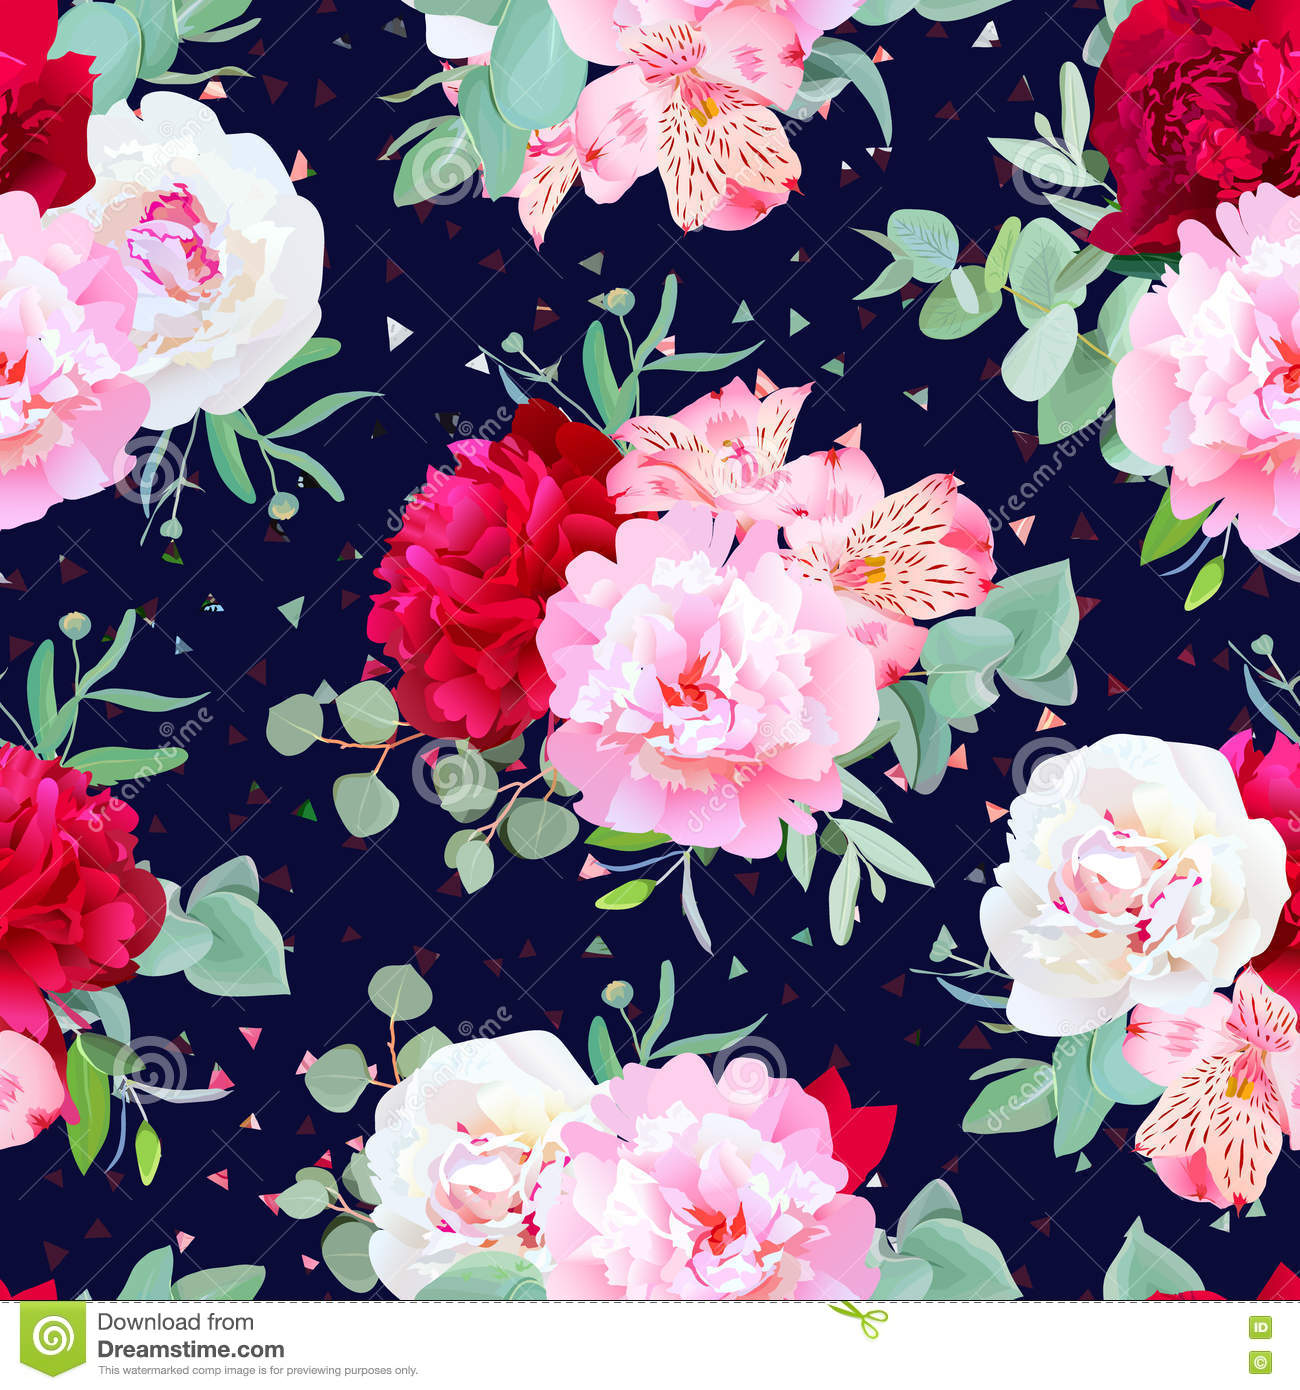 Navy Floral Seamless Vector Print With Burgundy Red And Pink Peony